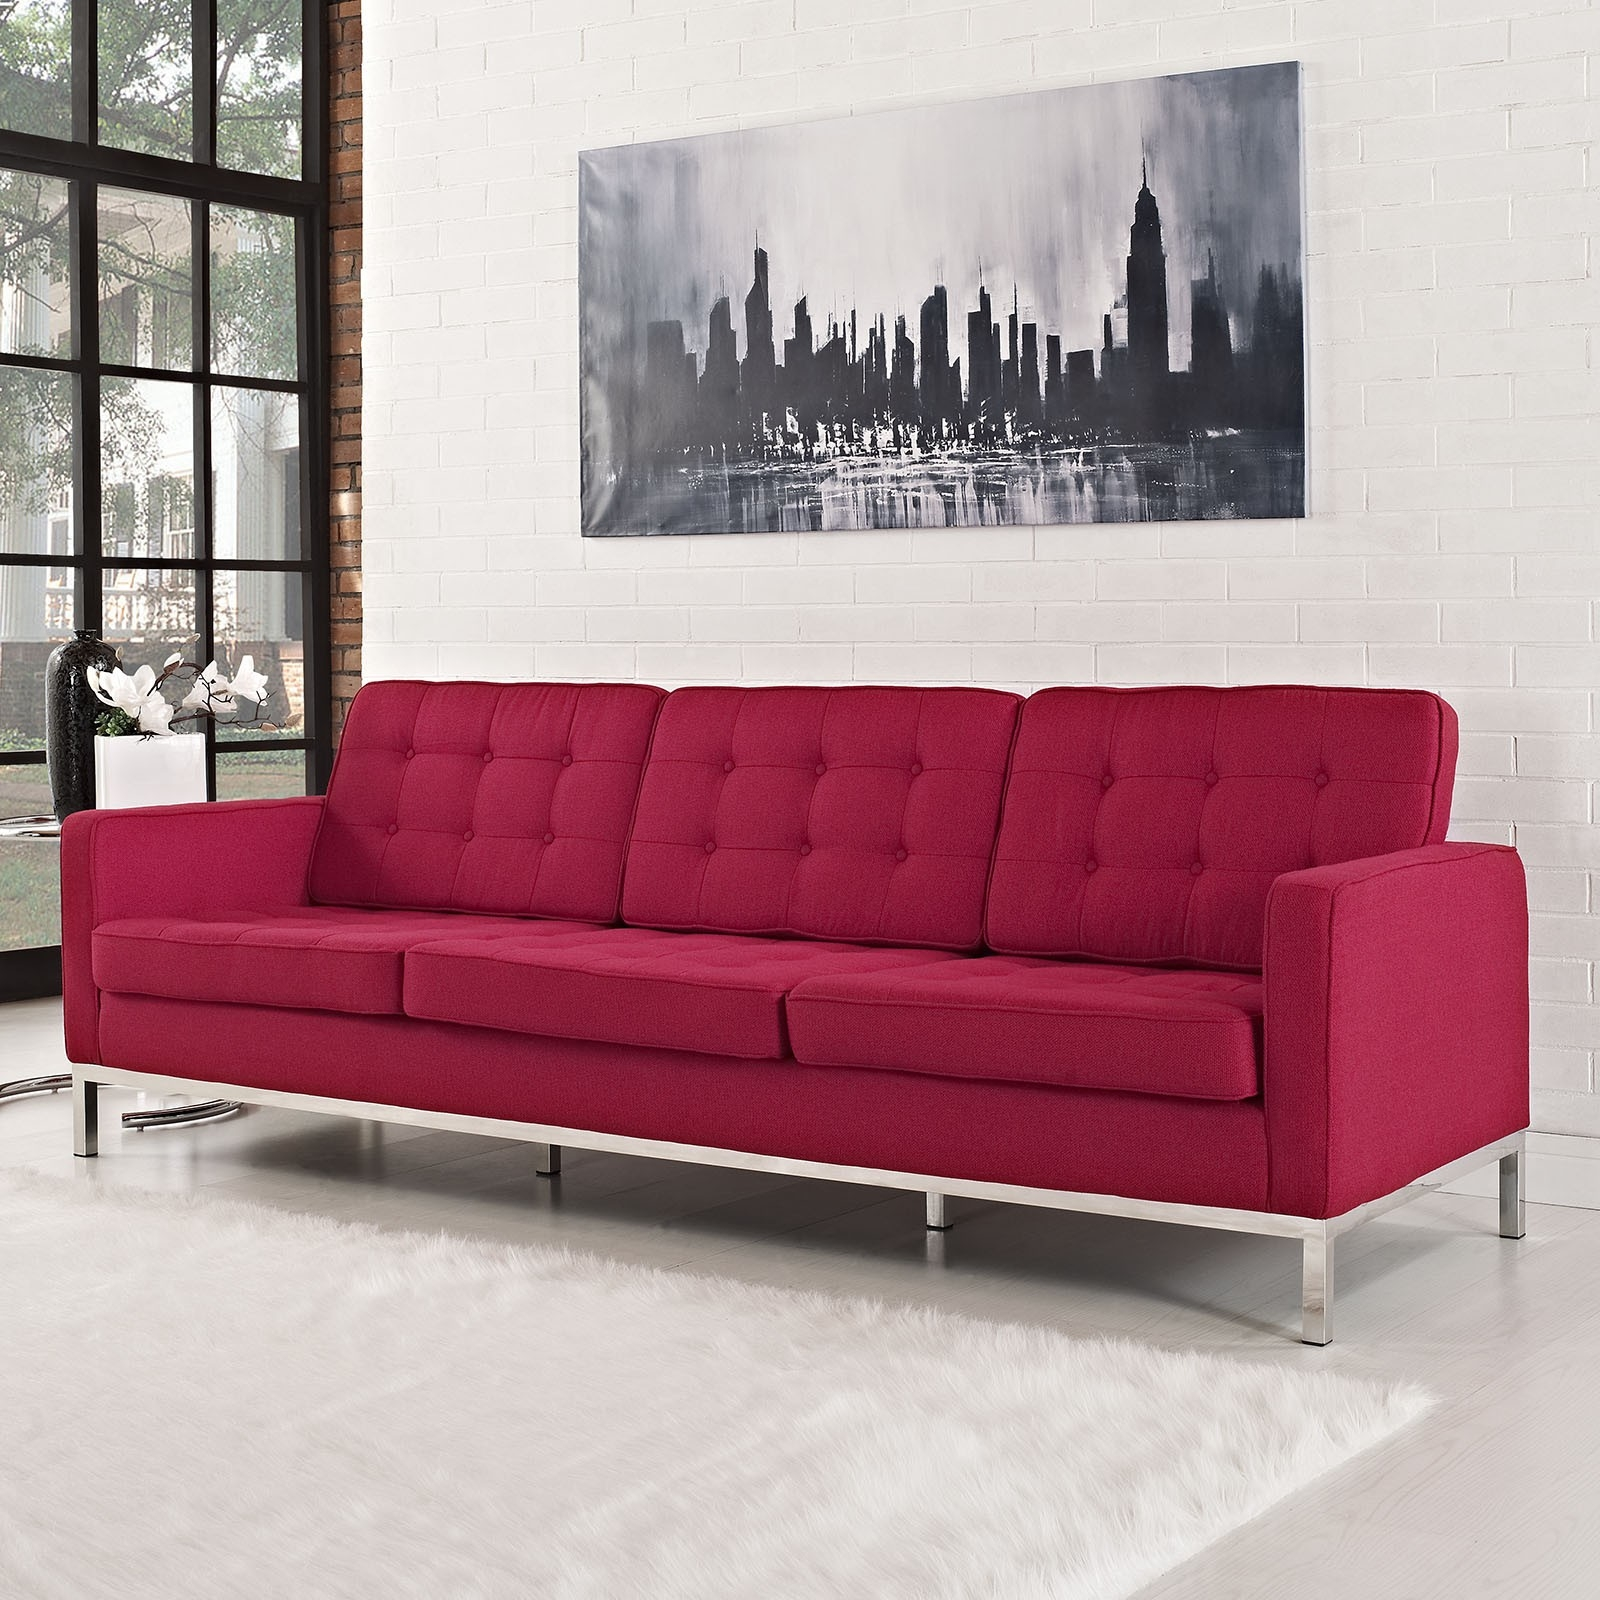 Knoll Florence 2 Seats Sofa In The Shop River Academy With Florence Knoll Style Sofas (View 12 of 15)